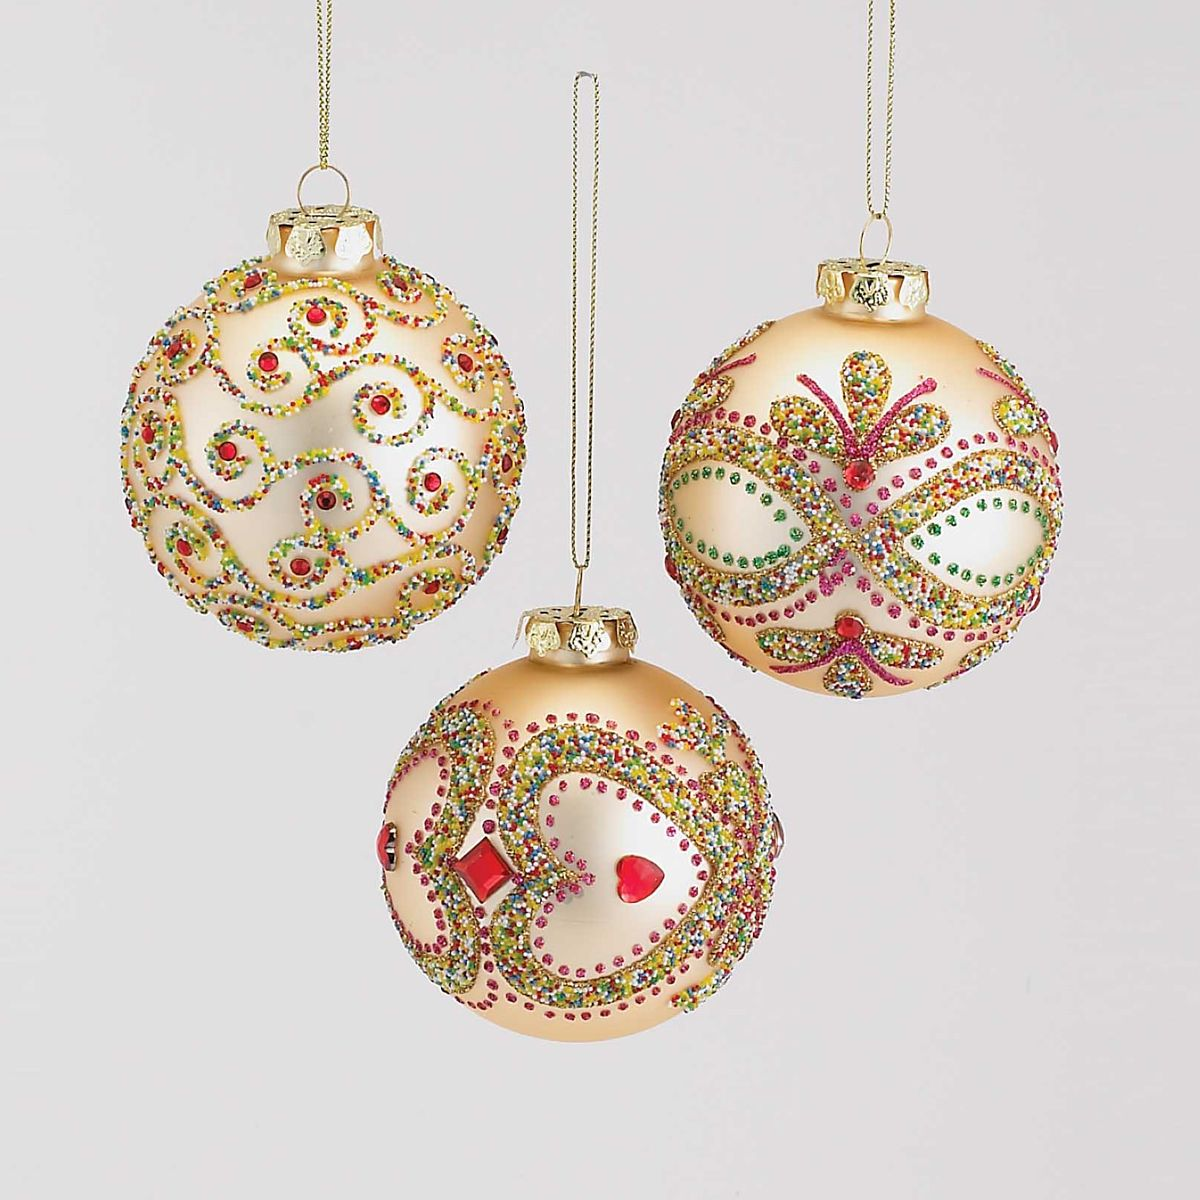 Beautiful new glass ornaments with jewels and candy color